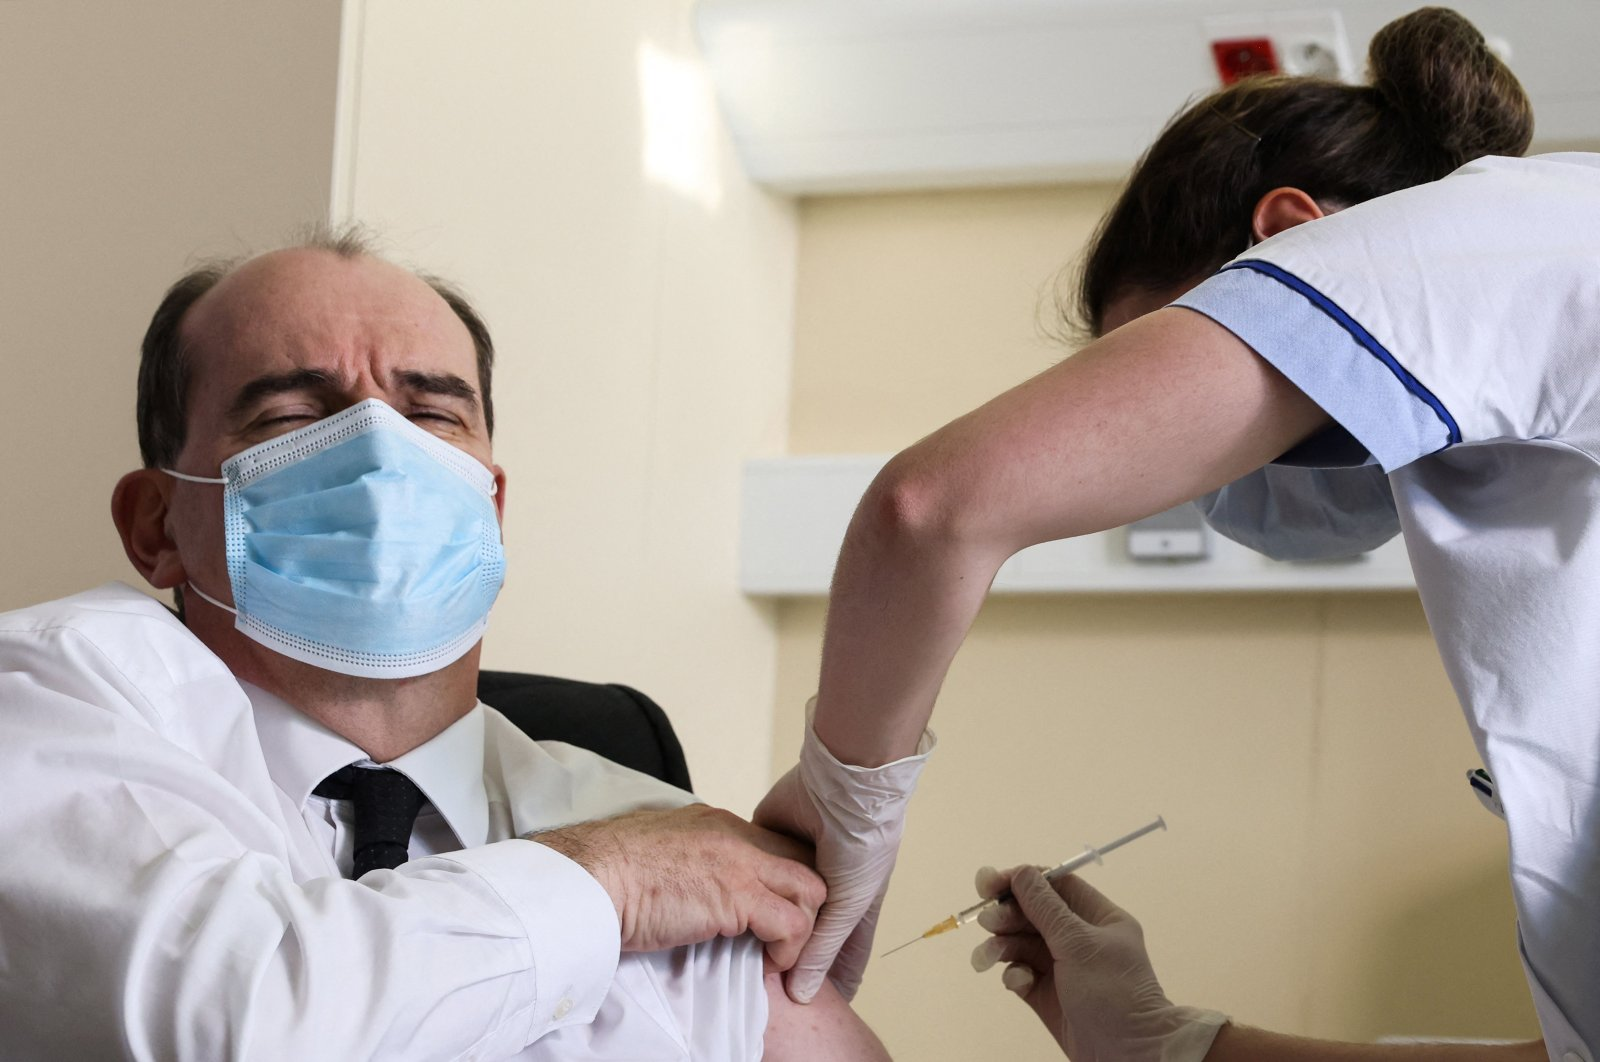 Prime Minister Jean Castex, 55-years-old, reacts as he is vaccinated with the AstraZeneca COVID-19 vaccine in a hospital, on the outskirts of Paris, France, March 19, 2021. (THOMAS COEX / POOL / AFP)